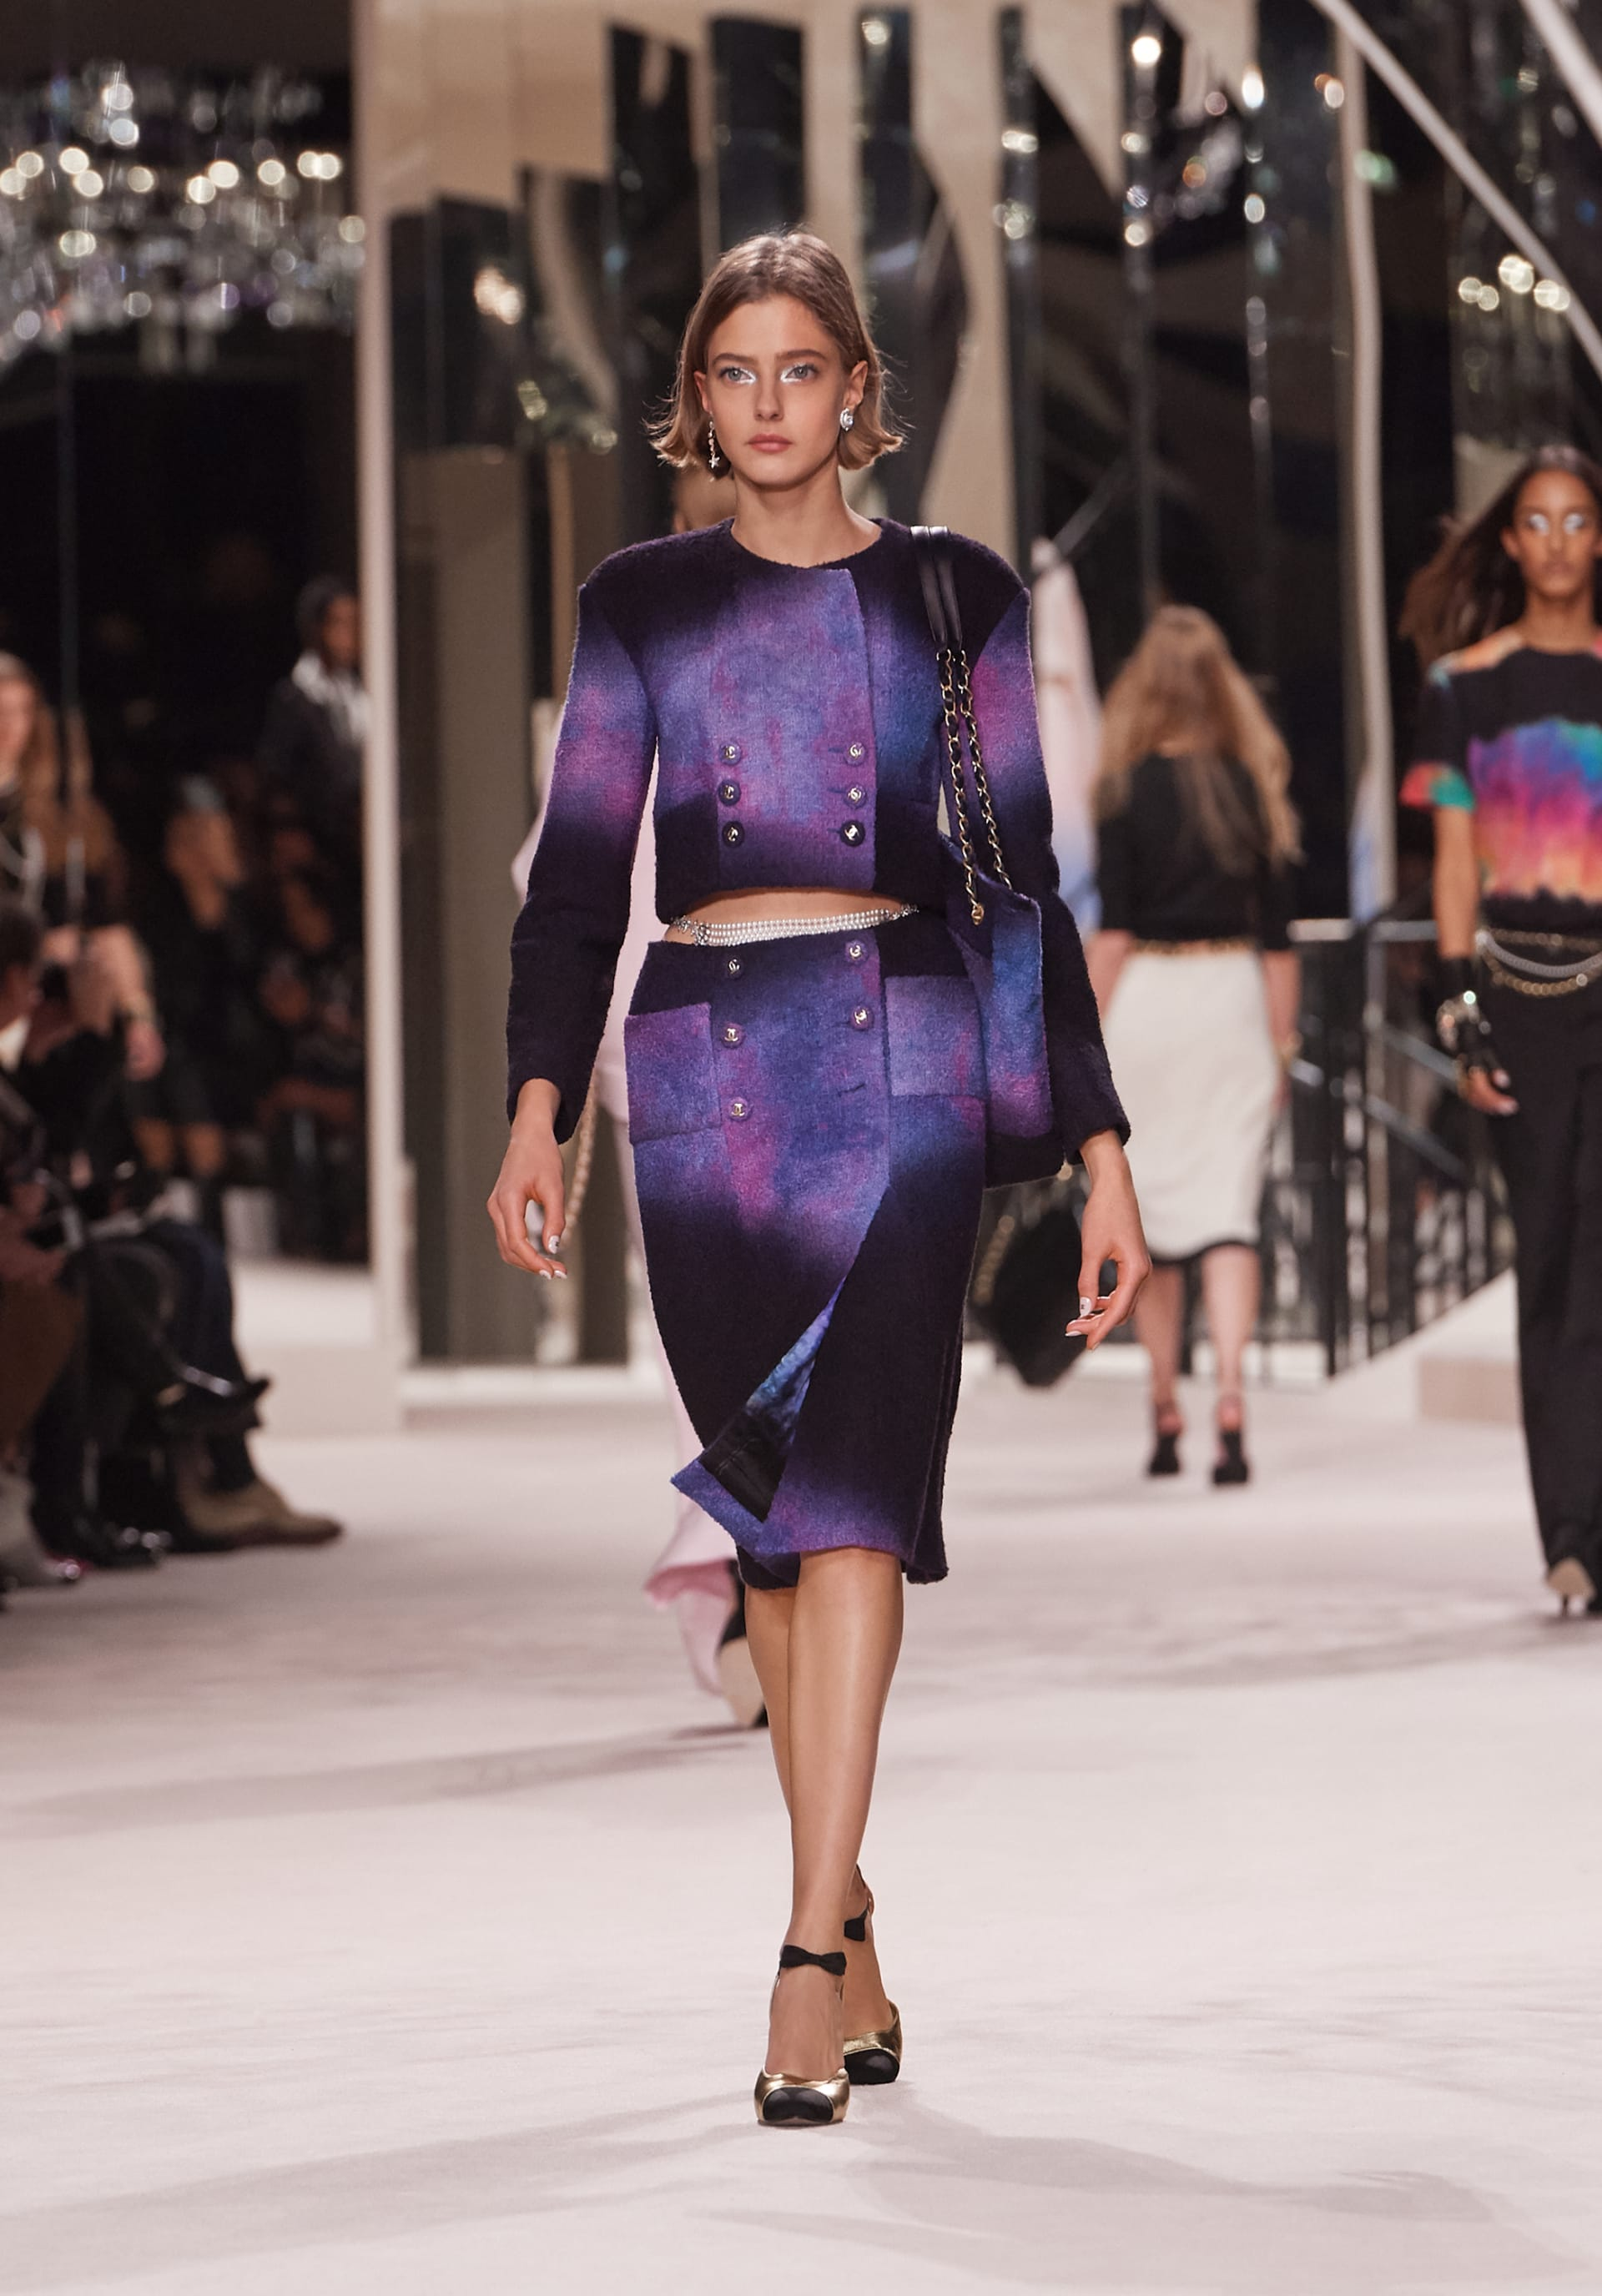 View 1 - Look 23 - Métiers d'Art 2019/20 - see full sized version